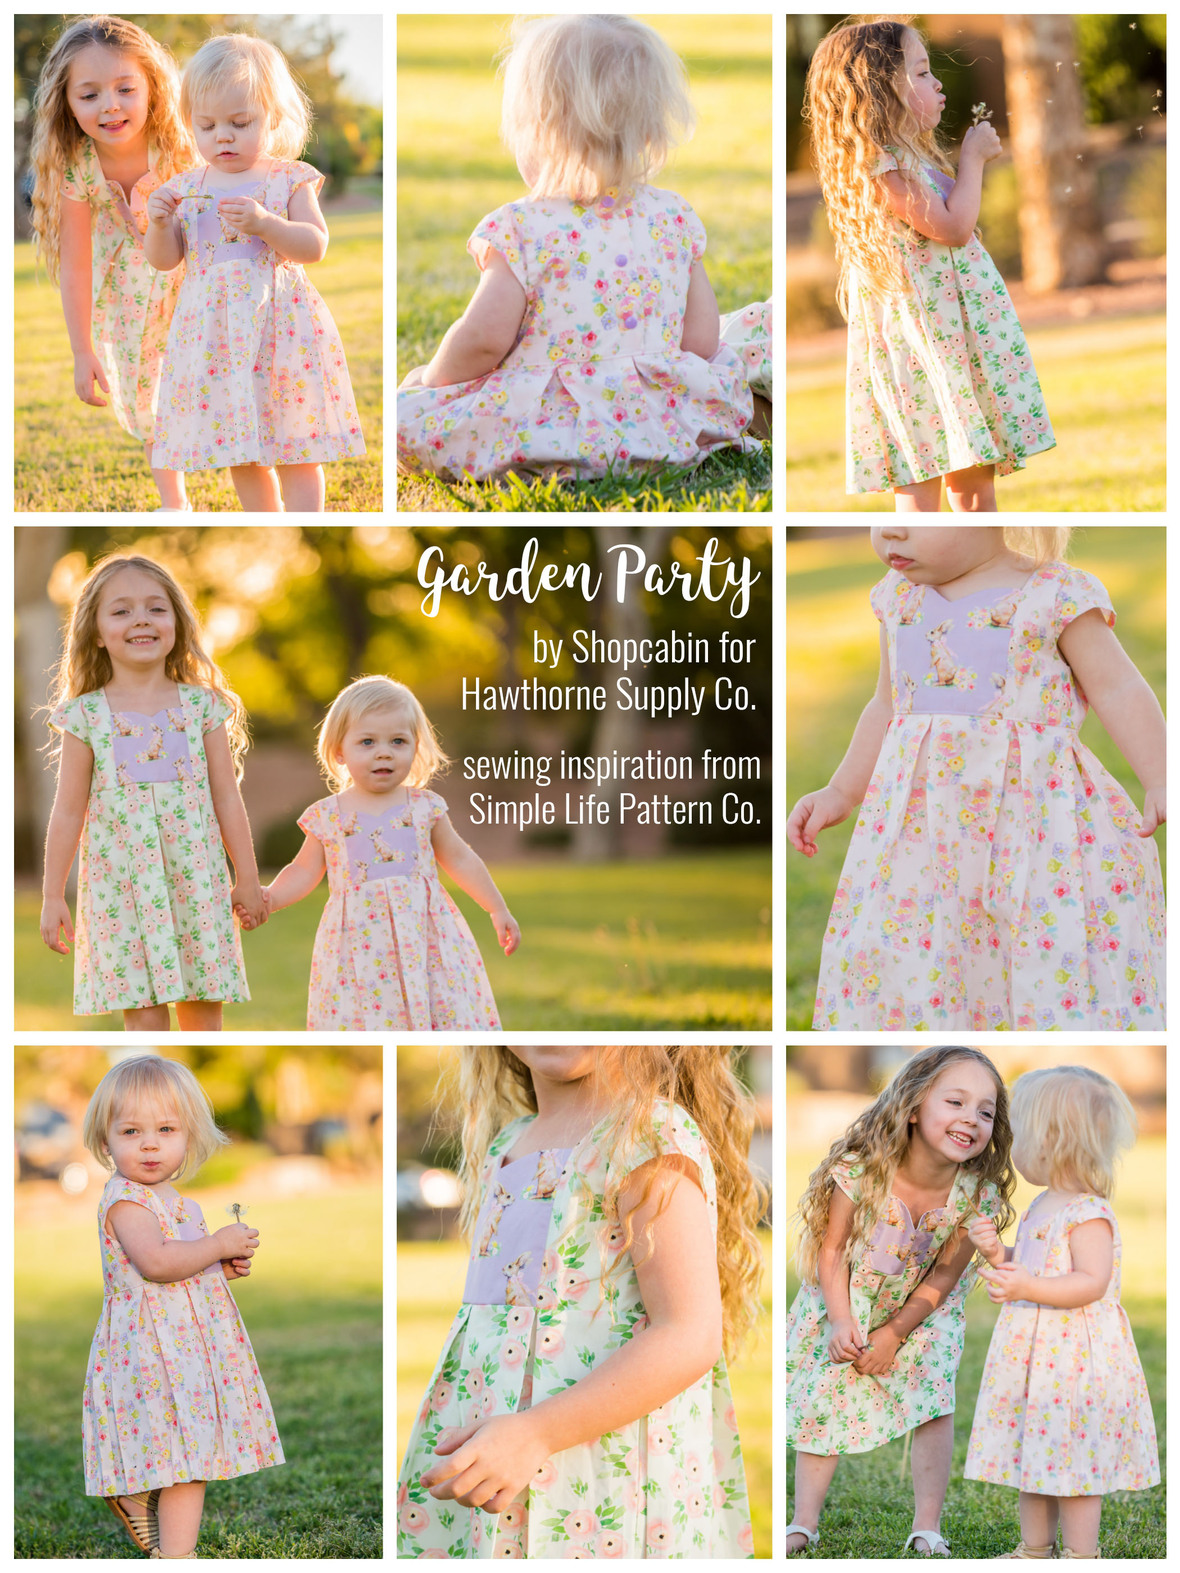 Garden Party Poplin Dresses from Hawthorne Supply Co